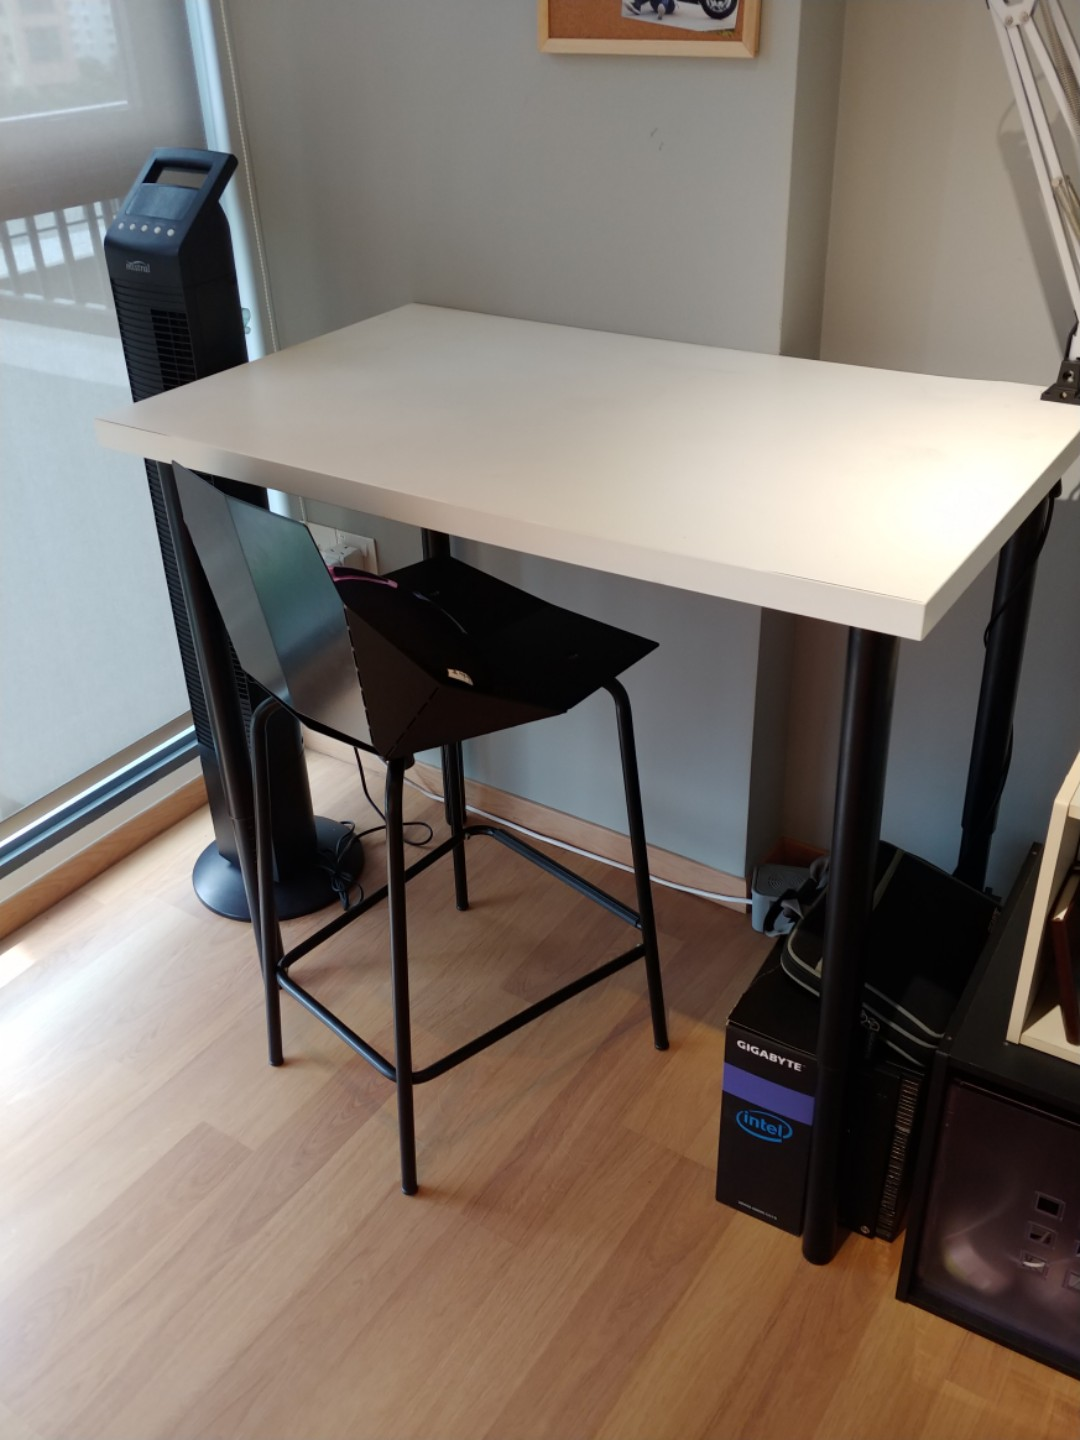 Linnmon Ikea Linnmon Table Top With Height Adjustable Legs